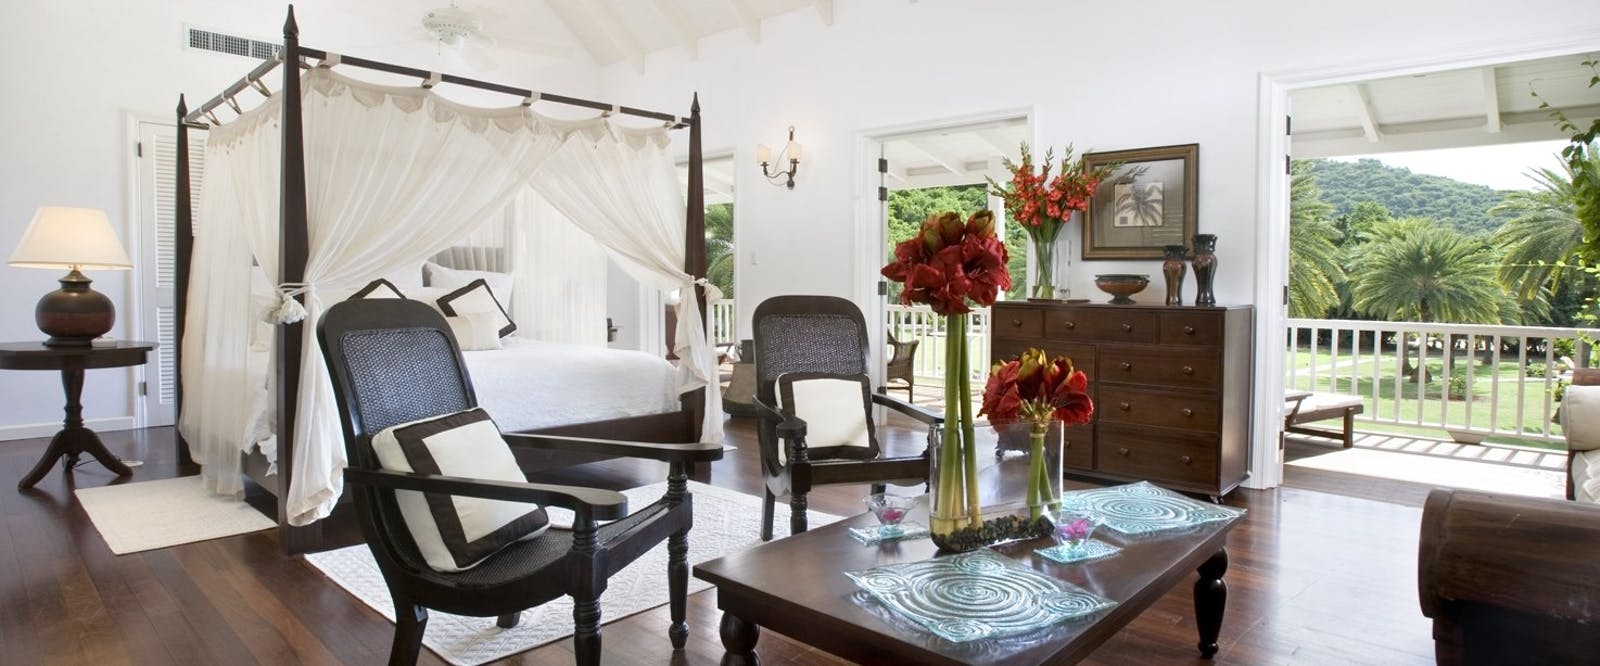 Deluxe Junior Suite at The Inn at English Harbour, Antigua